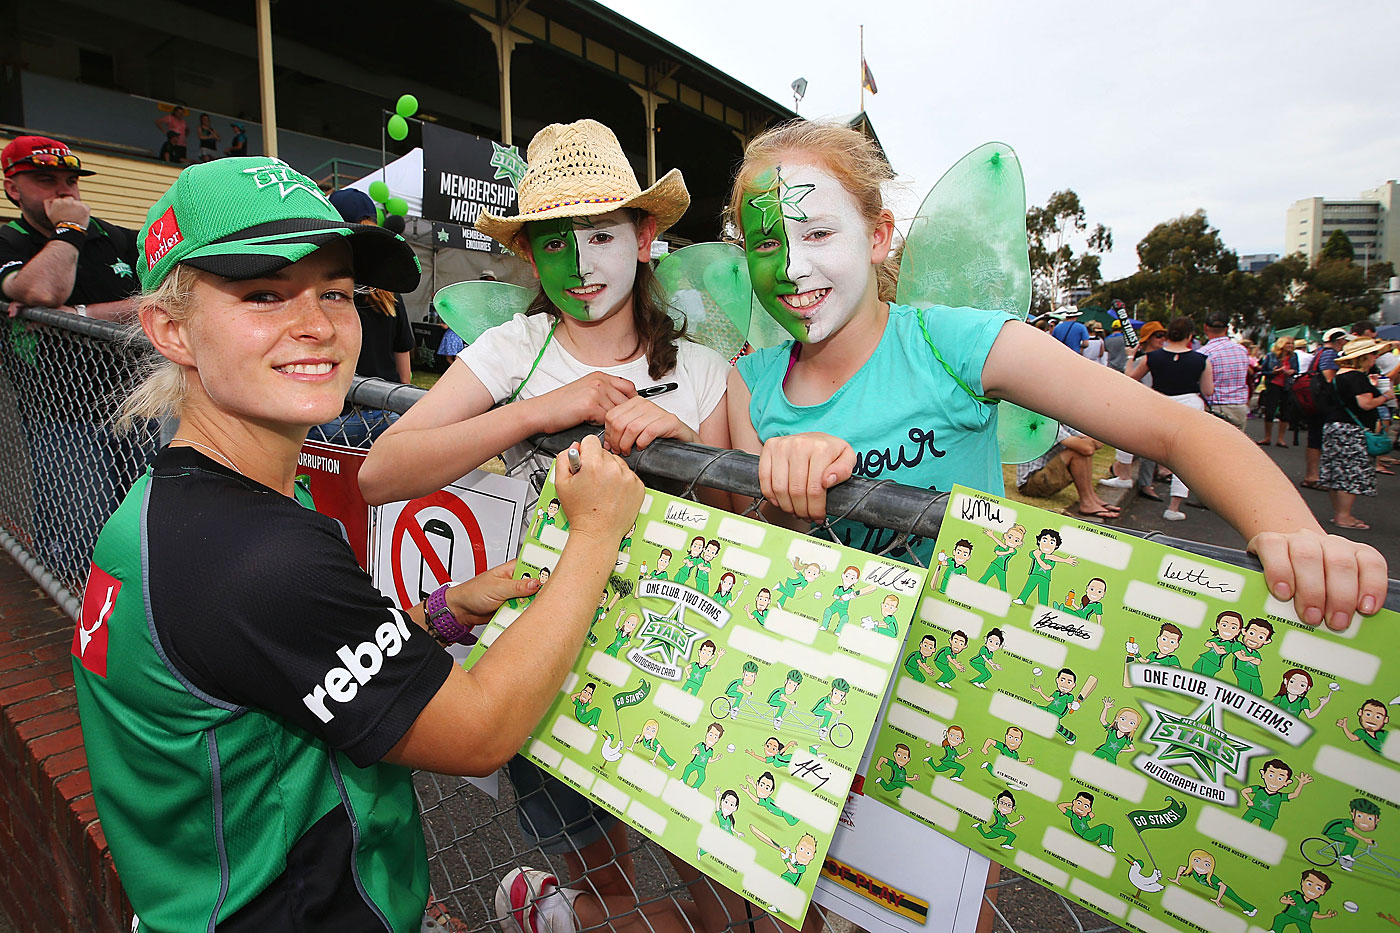 The inaugural WBBL was a massive success in Australia both in terms of venue attendances and television viewing figures